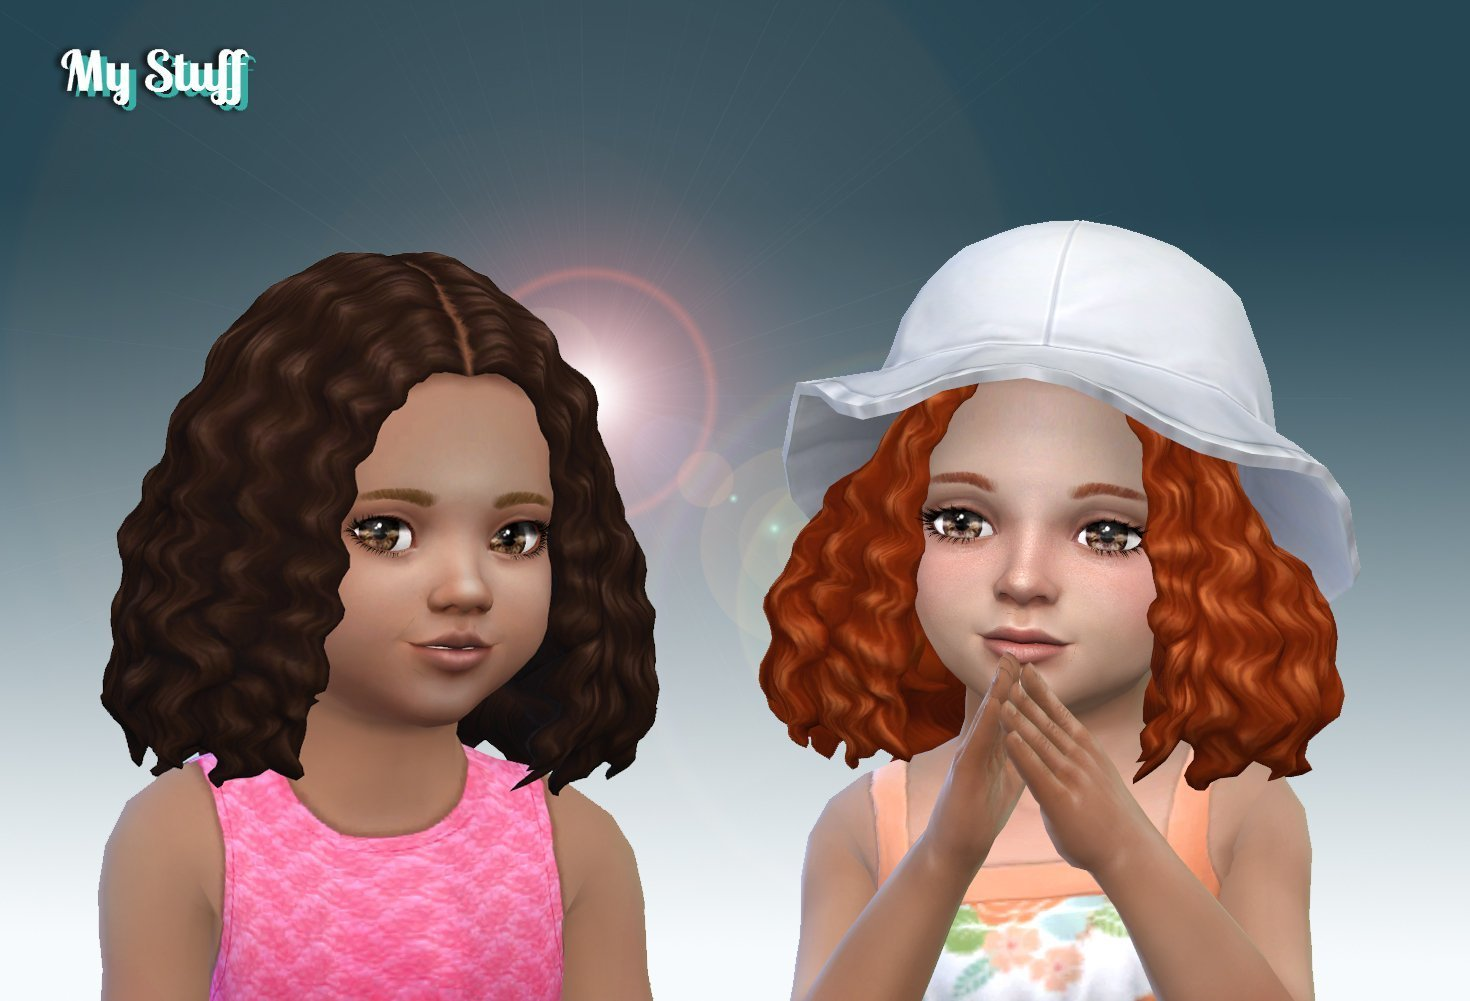 Joanne Hairstyle for Toddlers